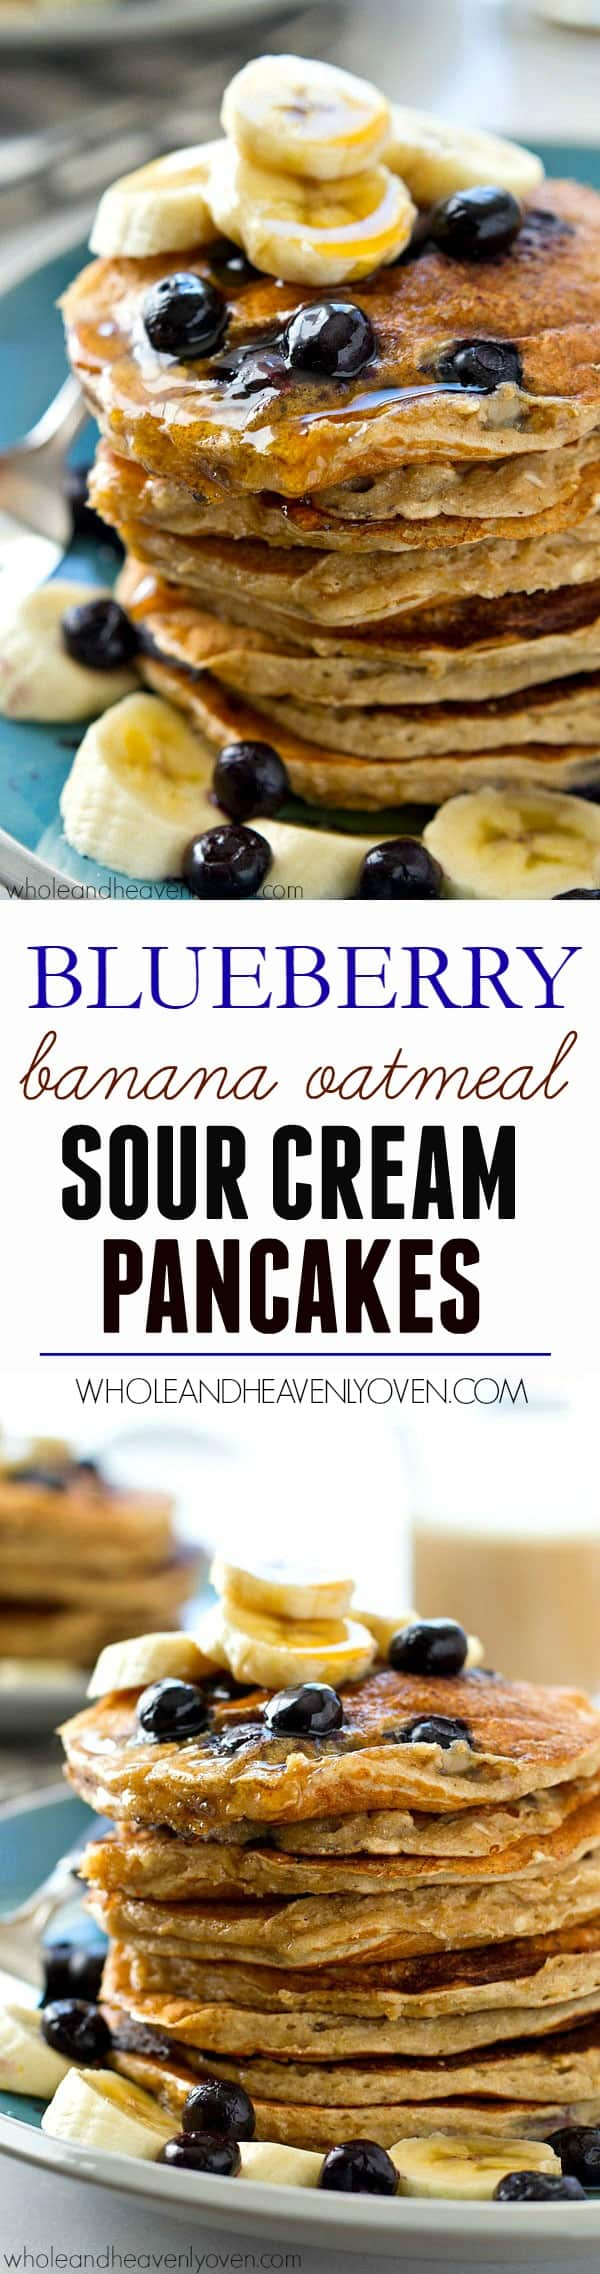 Extra-fluffy inside and loaded with oats, blueberries, and banana flavor, these oatmeal sour cream pancakes are a perfect healthier way to get your pancake fix!